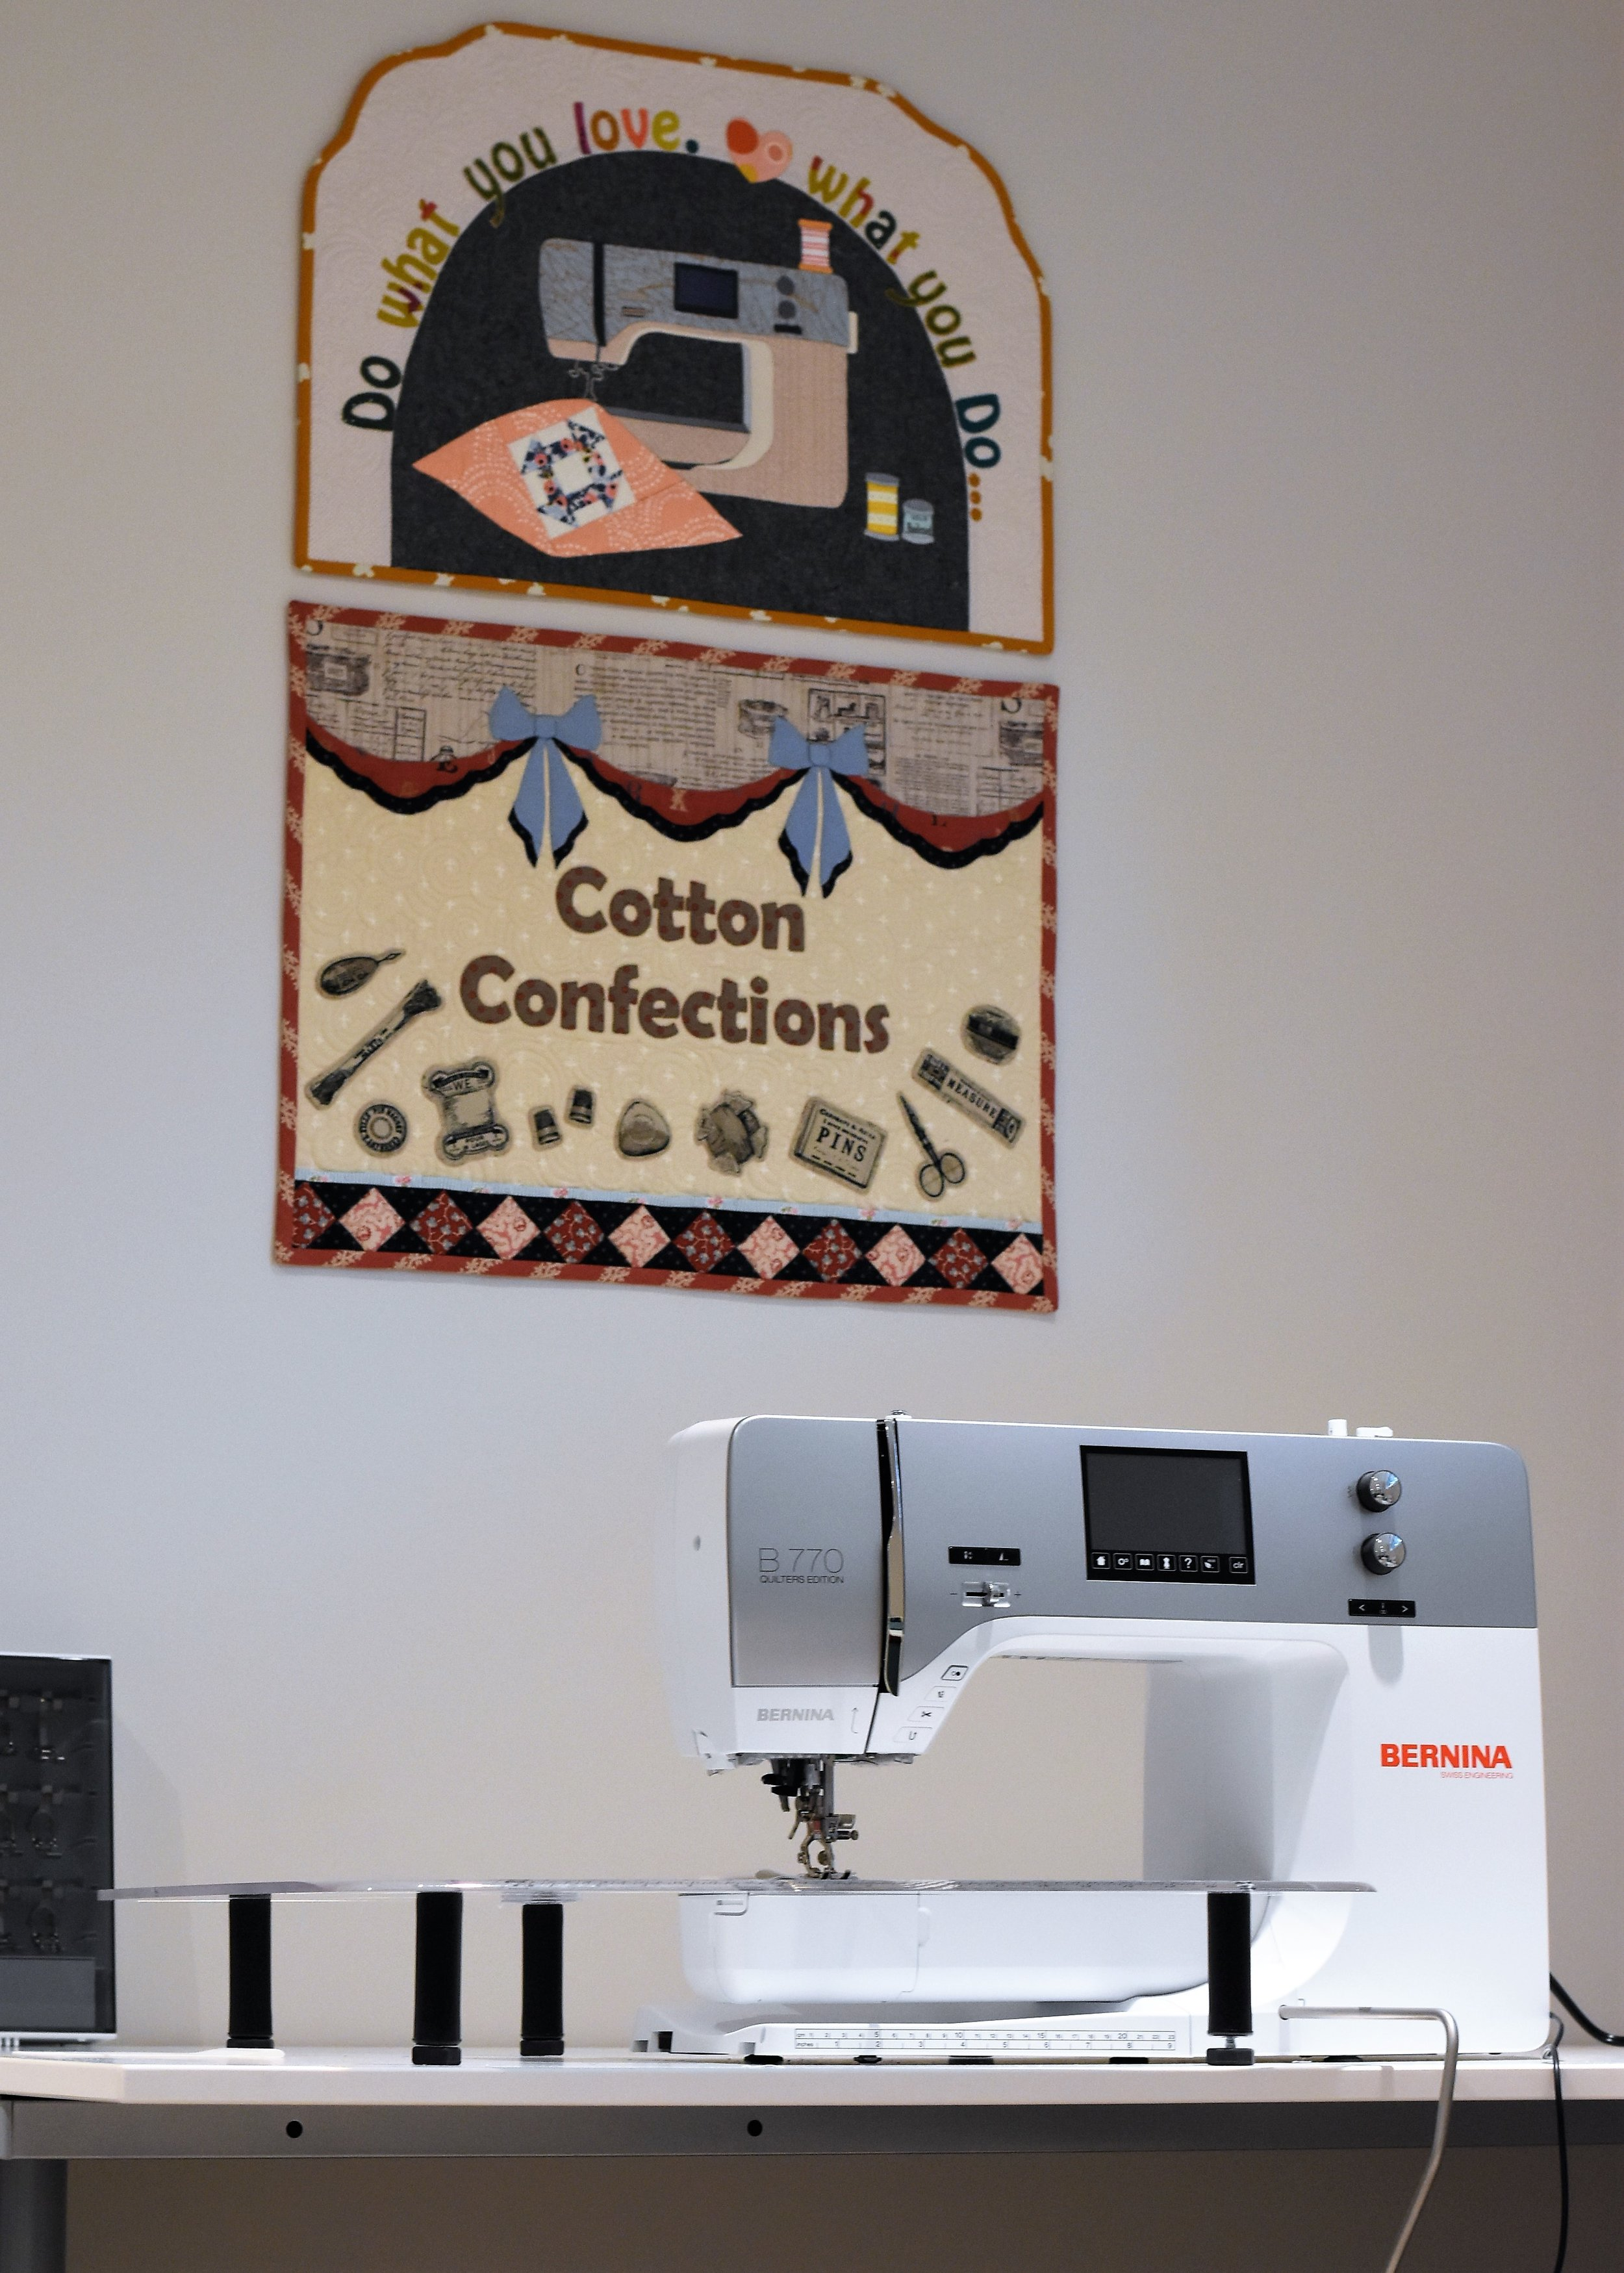 Bernina Q20 And The B770 Update Cotton Confections